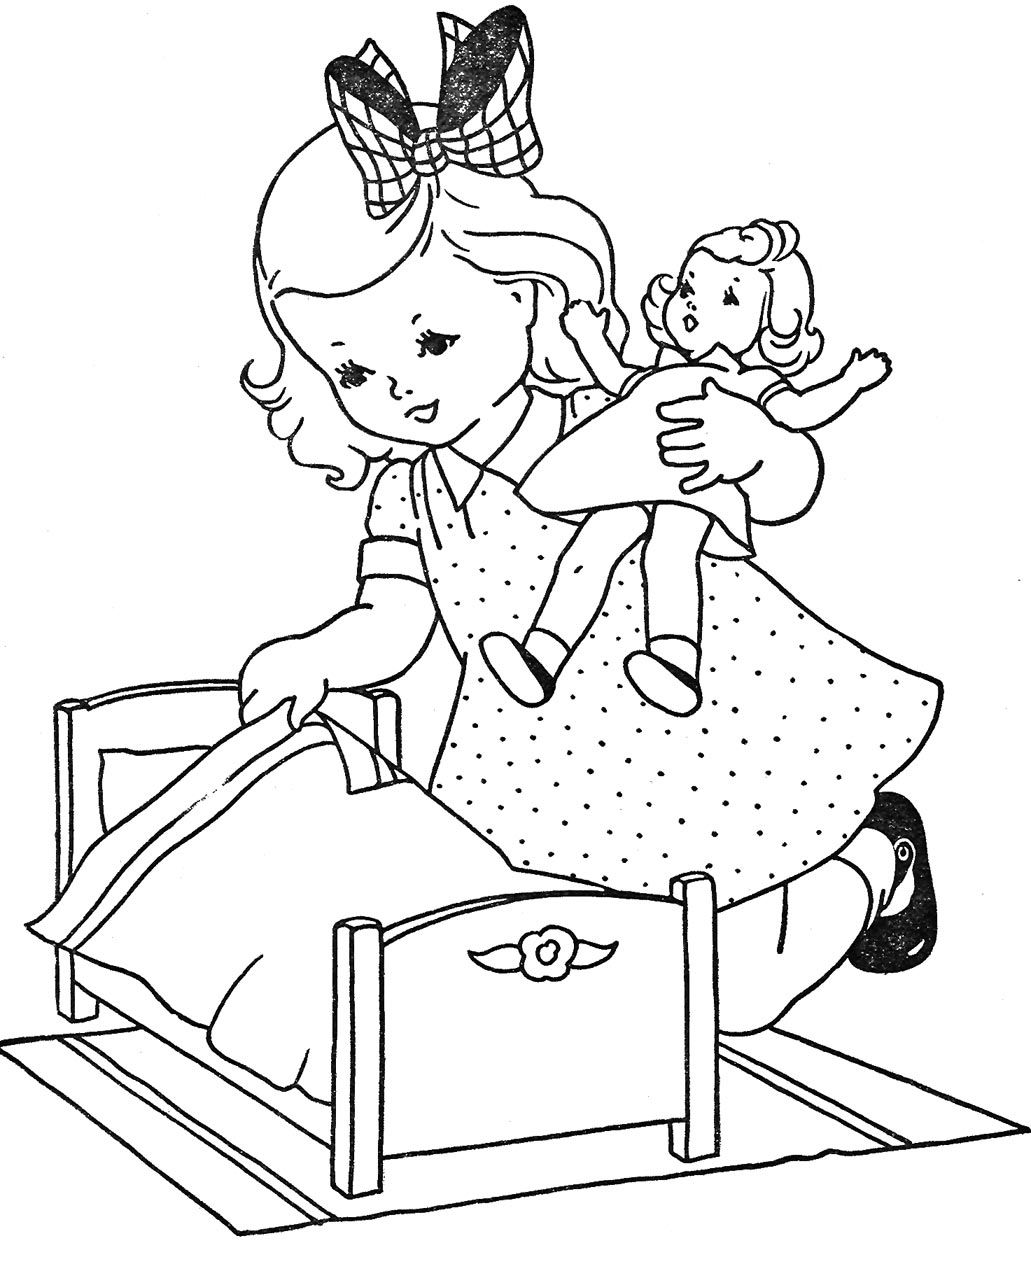 doll colouring pages dolls coloring pages colouring pages doll